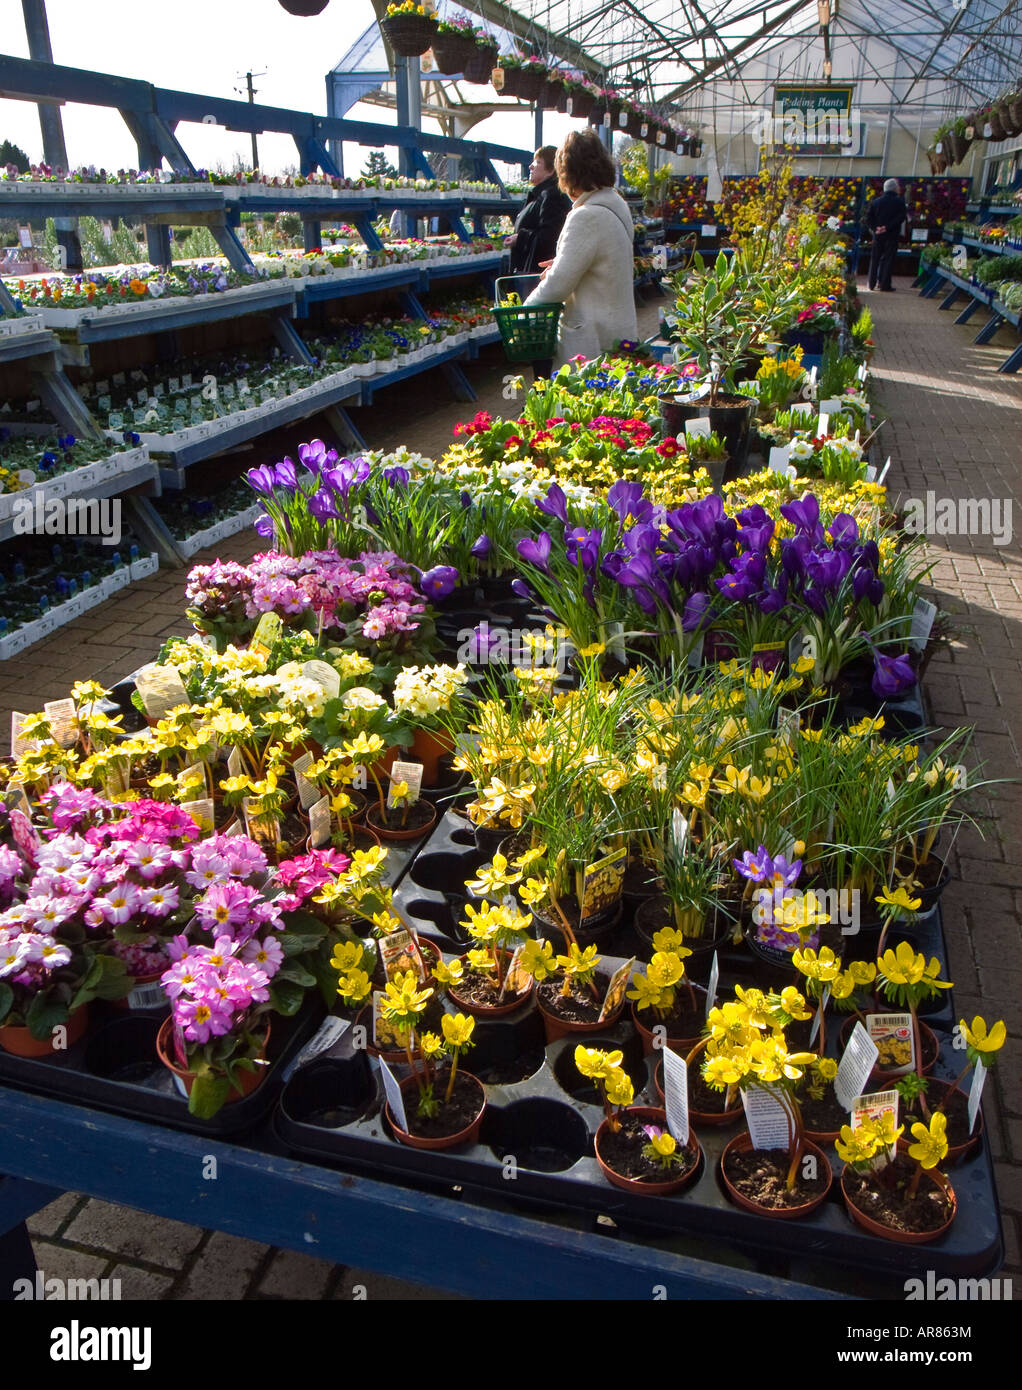 Scenic Spring Flowers For Sale In A Garden Centre England February Uk Eu  With Glamorous Spring Flowers For Sale In A Garden Centre England February Uk Eu With Breathtaking Spice Garden Borehamwood Menu Also Garden Gear Cordless Lawn Mower In Addition Small House Garden Ideas And Hilton Garden Detroit As Well As Gardens Garden Additionally How To Garden In Sims  From Alamycom With   Glamorous Spring Flowers For Sale In A Garden Centre England February Uk Eu  With Breathtaking Spring Flowers For Sale In A Garden Centre England February Uk Eu And Scenic Spice Garden Borehamwood Menu Also Garden Gear Cordless Lawn Mower In Addition Small House Garden Ideas From Alamycom